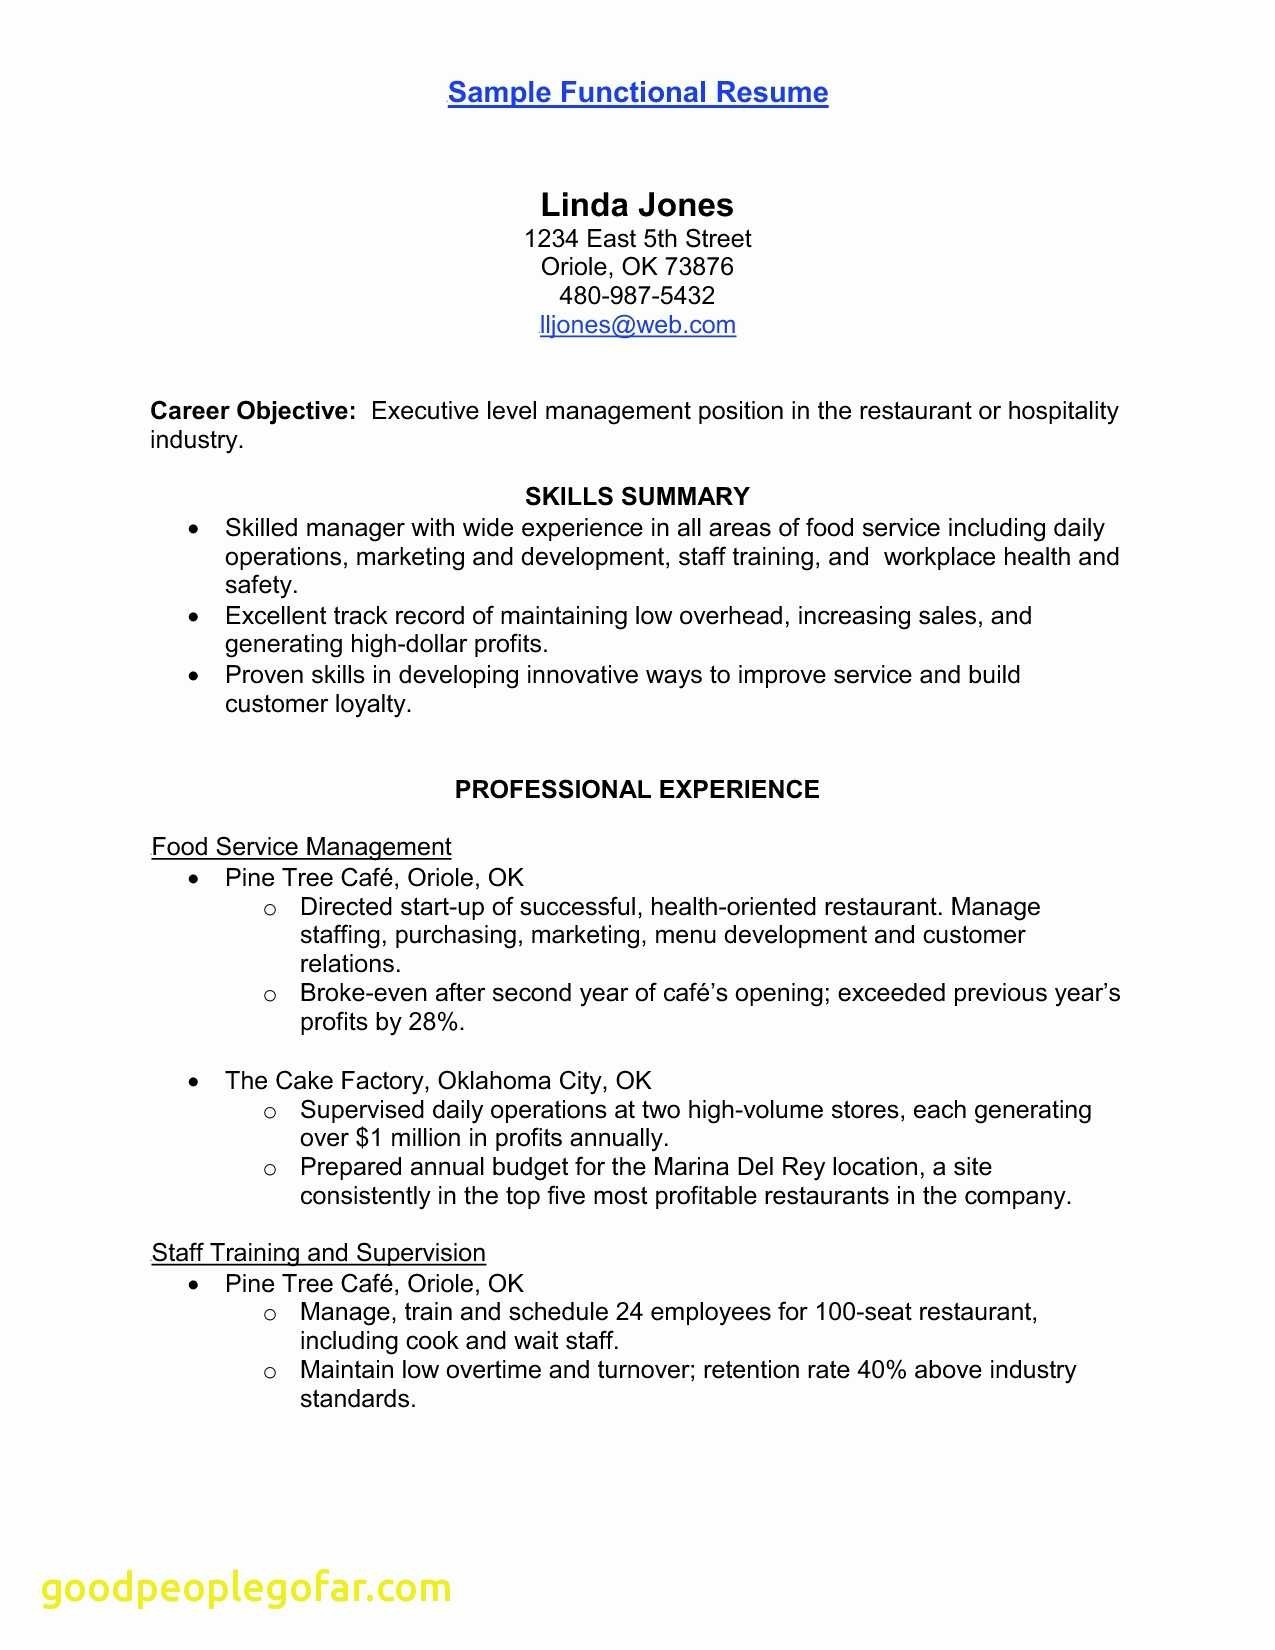 Resume for Pharmacy Technician - 19 Resume for Pharmacy Technician